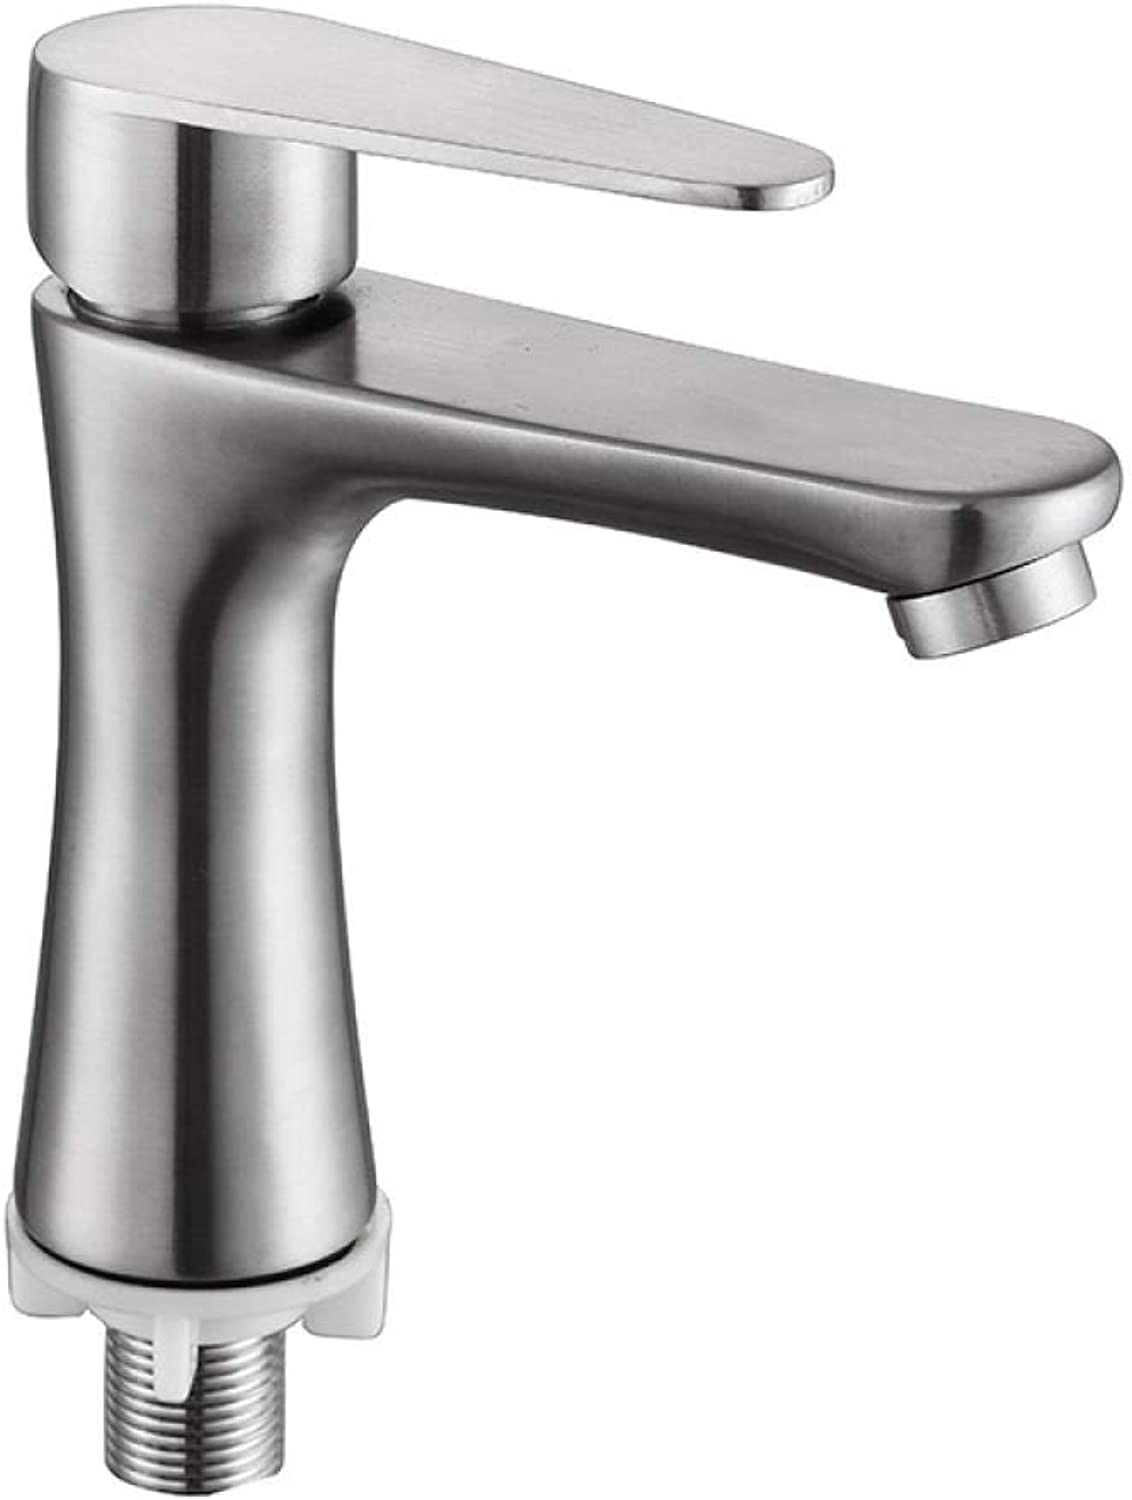 Stainless Steel Bathroom Single Cold Small Waist Plate Faucet Z762